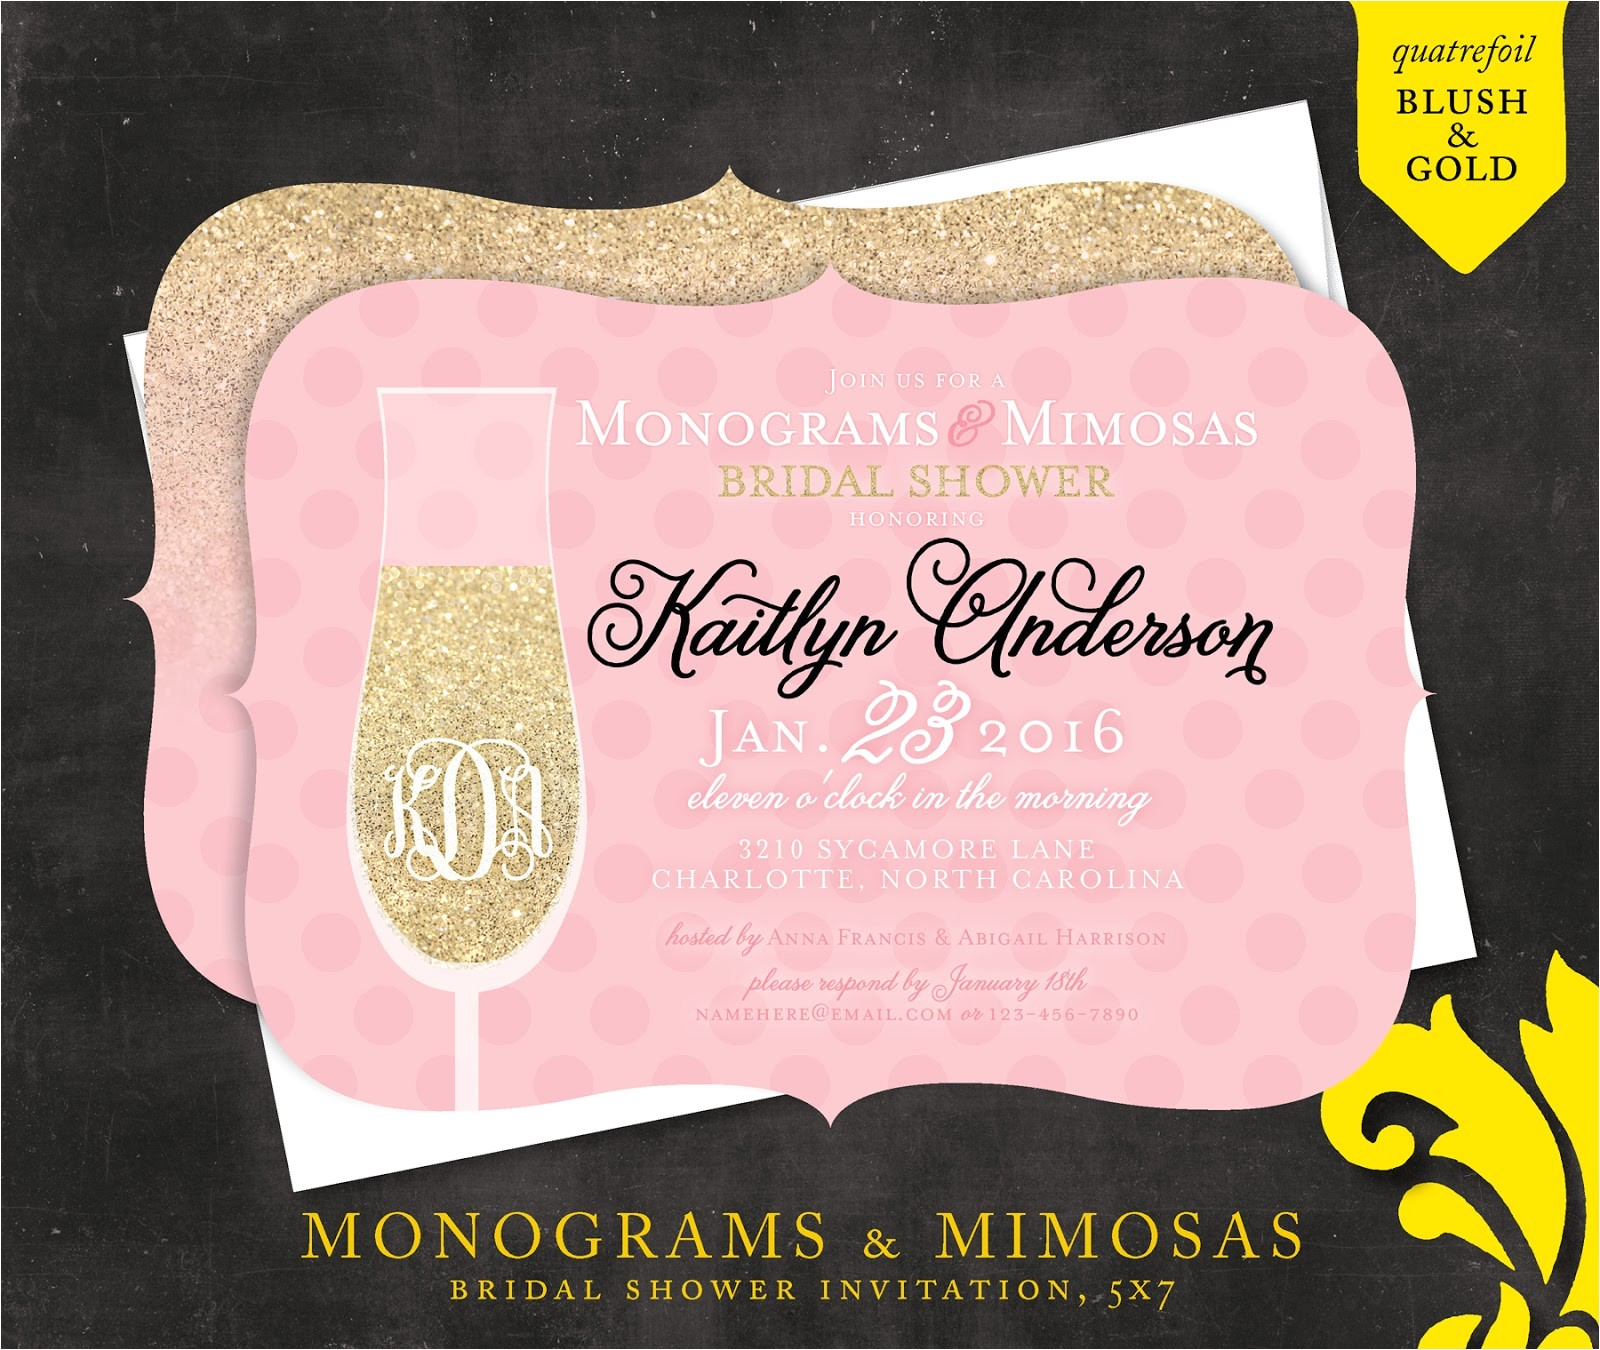 mimosas monograms bridal shower